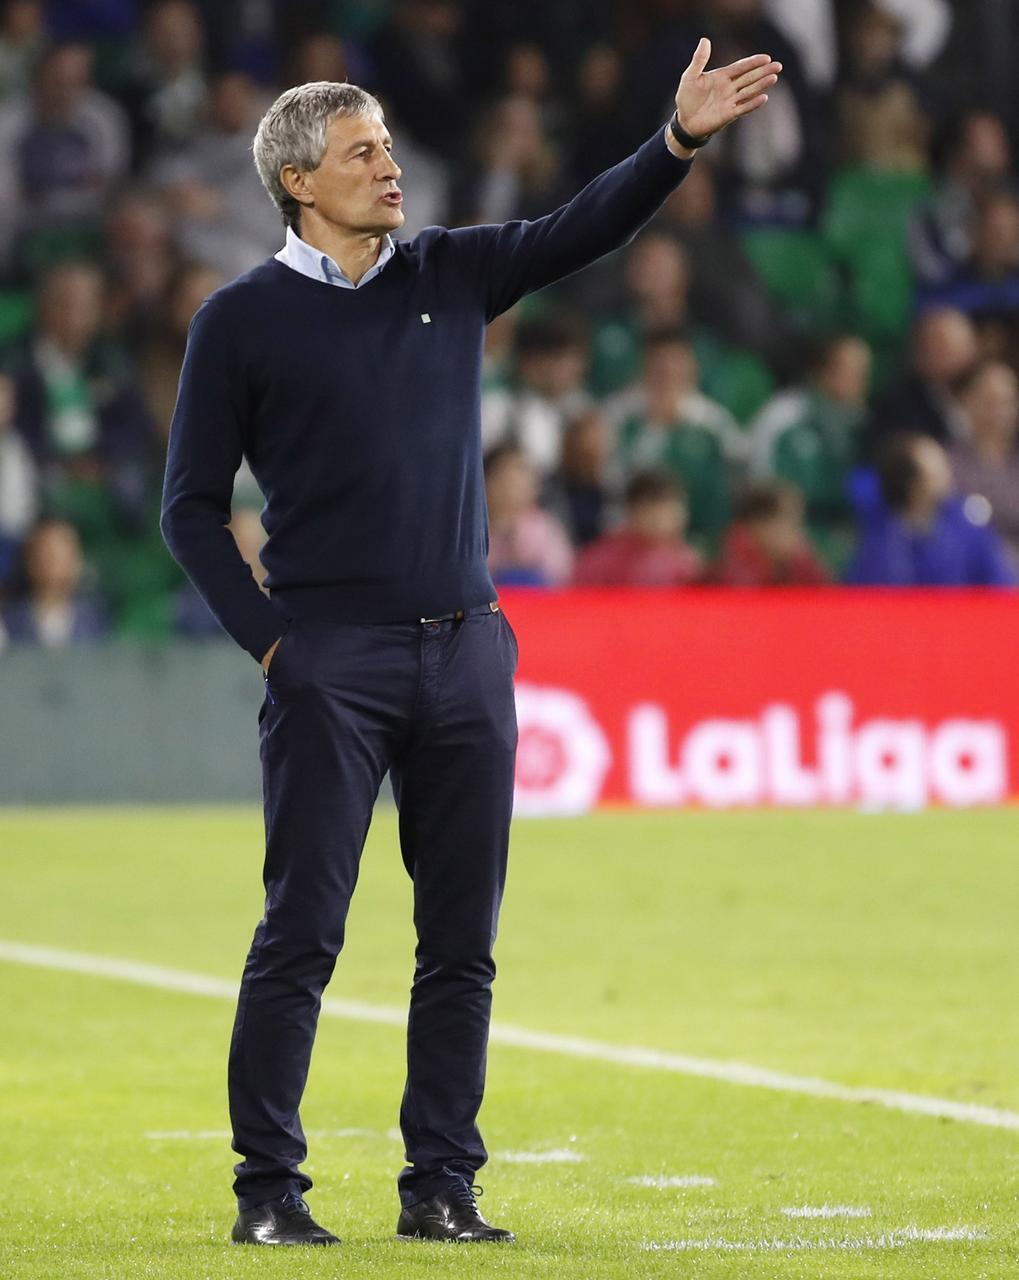 quique setien - photo #25